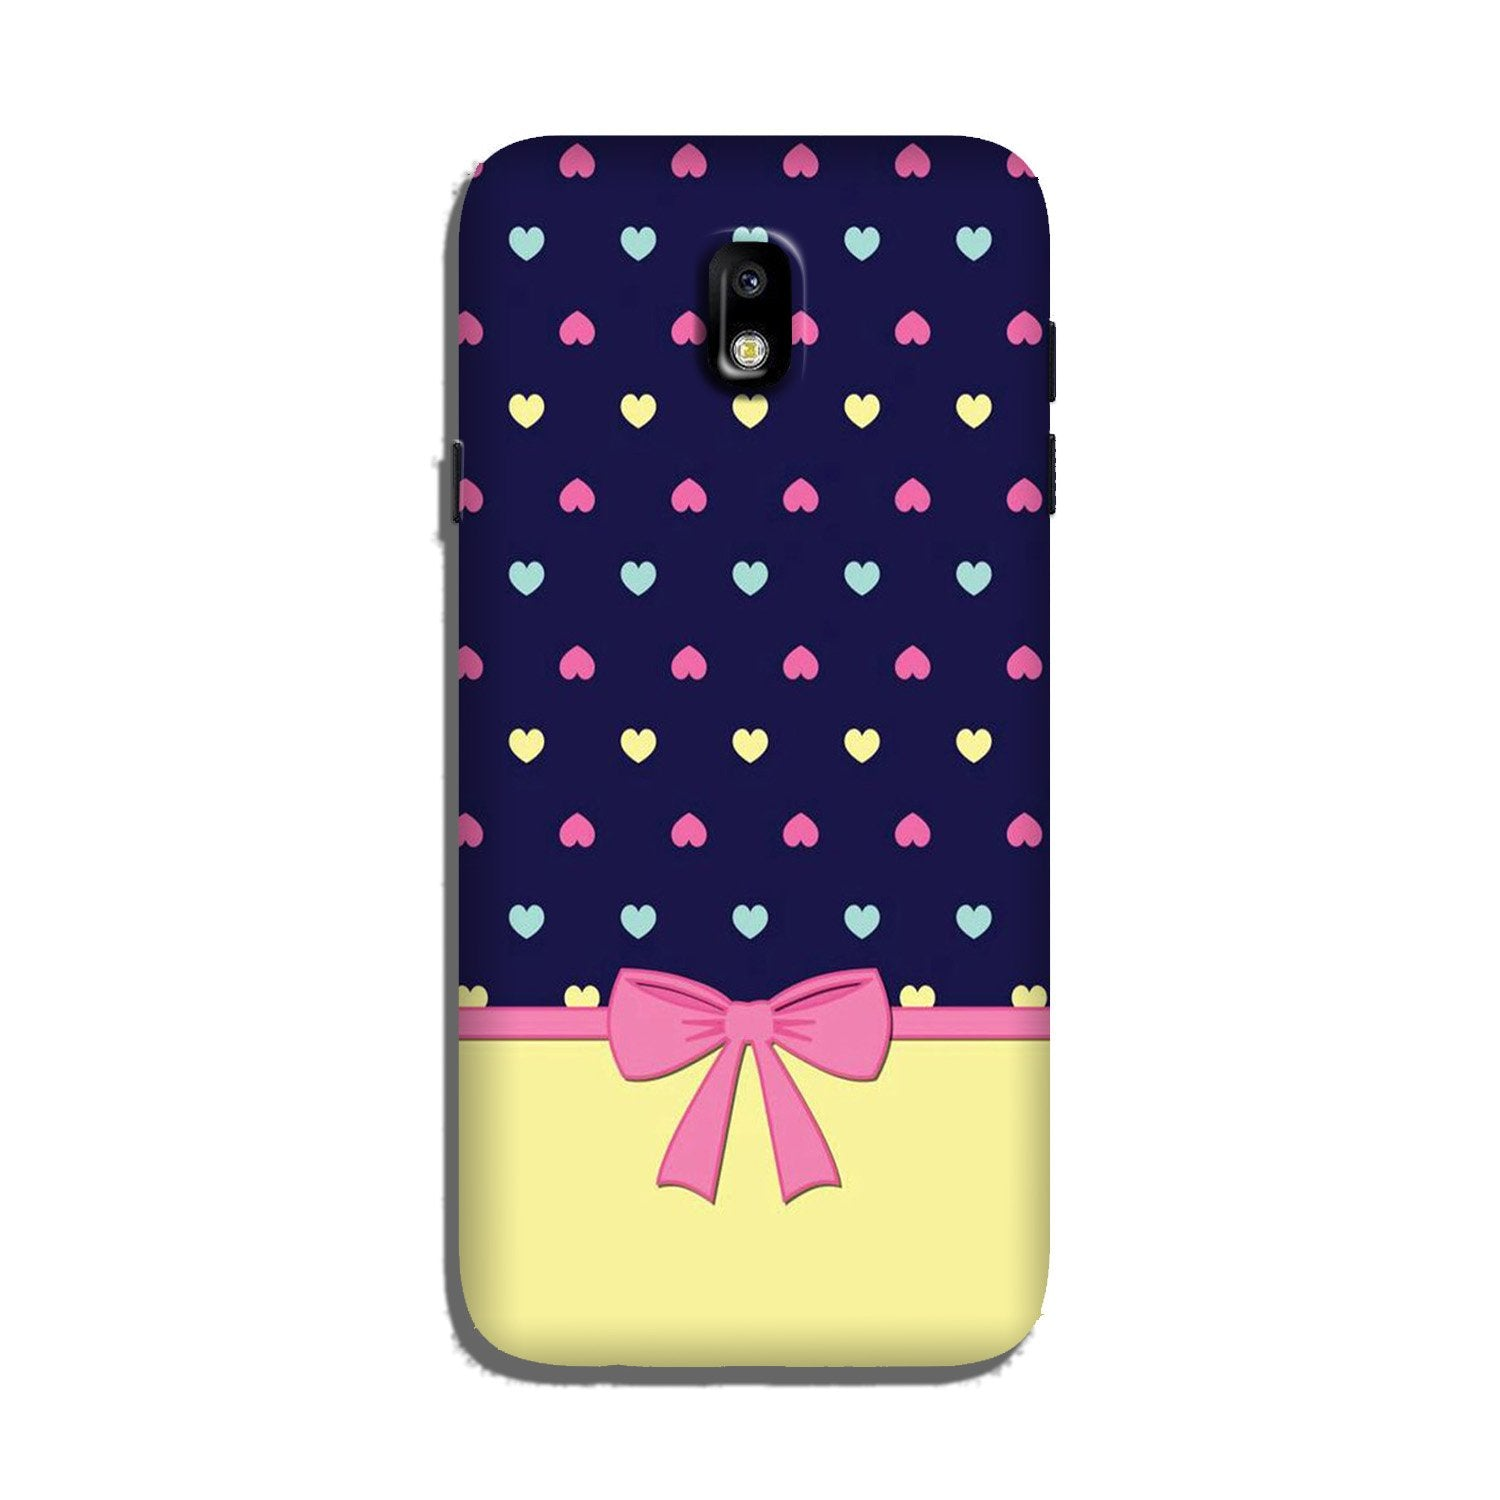 Gift Wrap5 Case for Galaxy J3 Pro